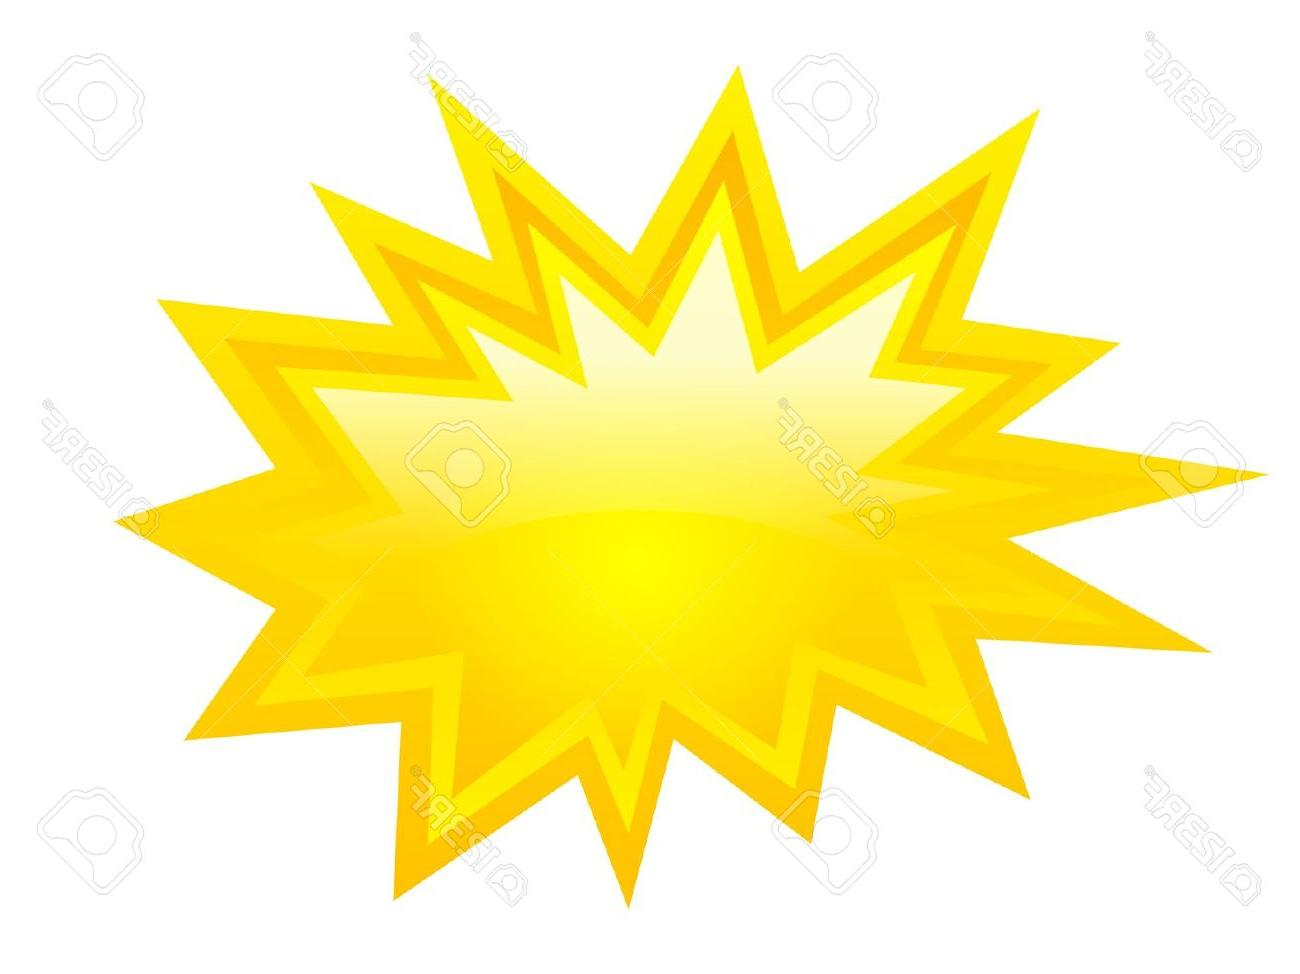 Burst clipart yellow. Star pictures free download